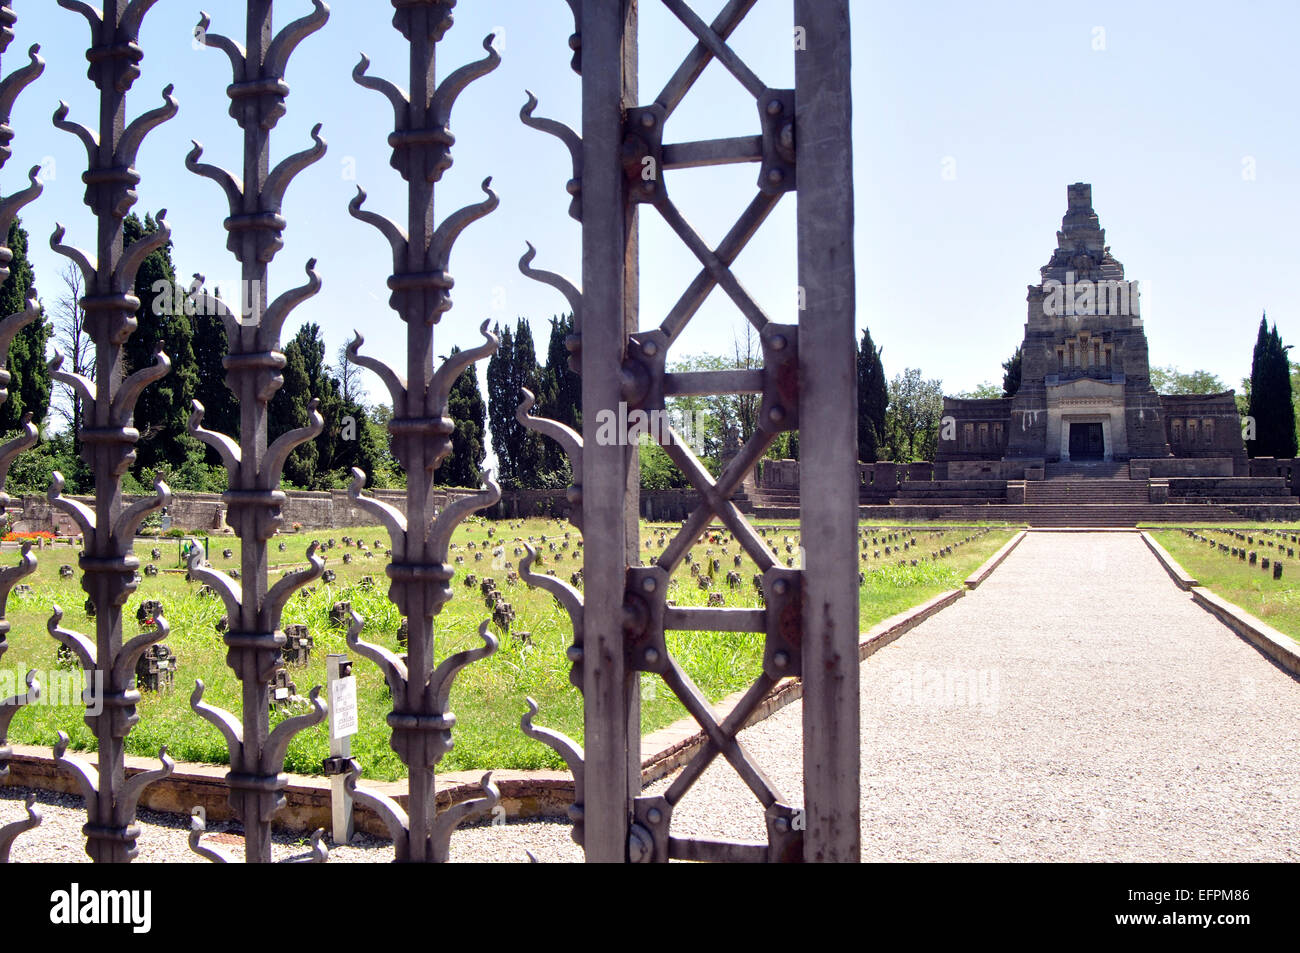 Italy, Lombardy, Crespi d'Adda, World Heritage Site, Worker Village, Cemetery - Stock Image